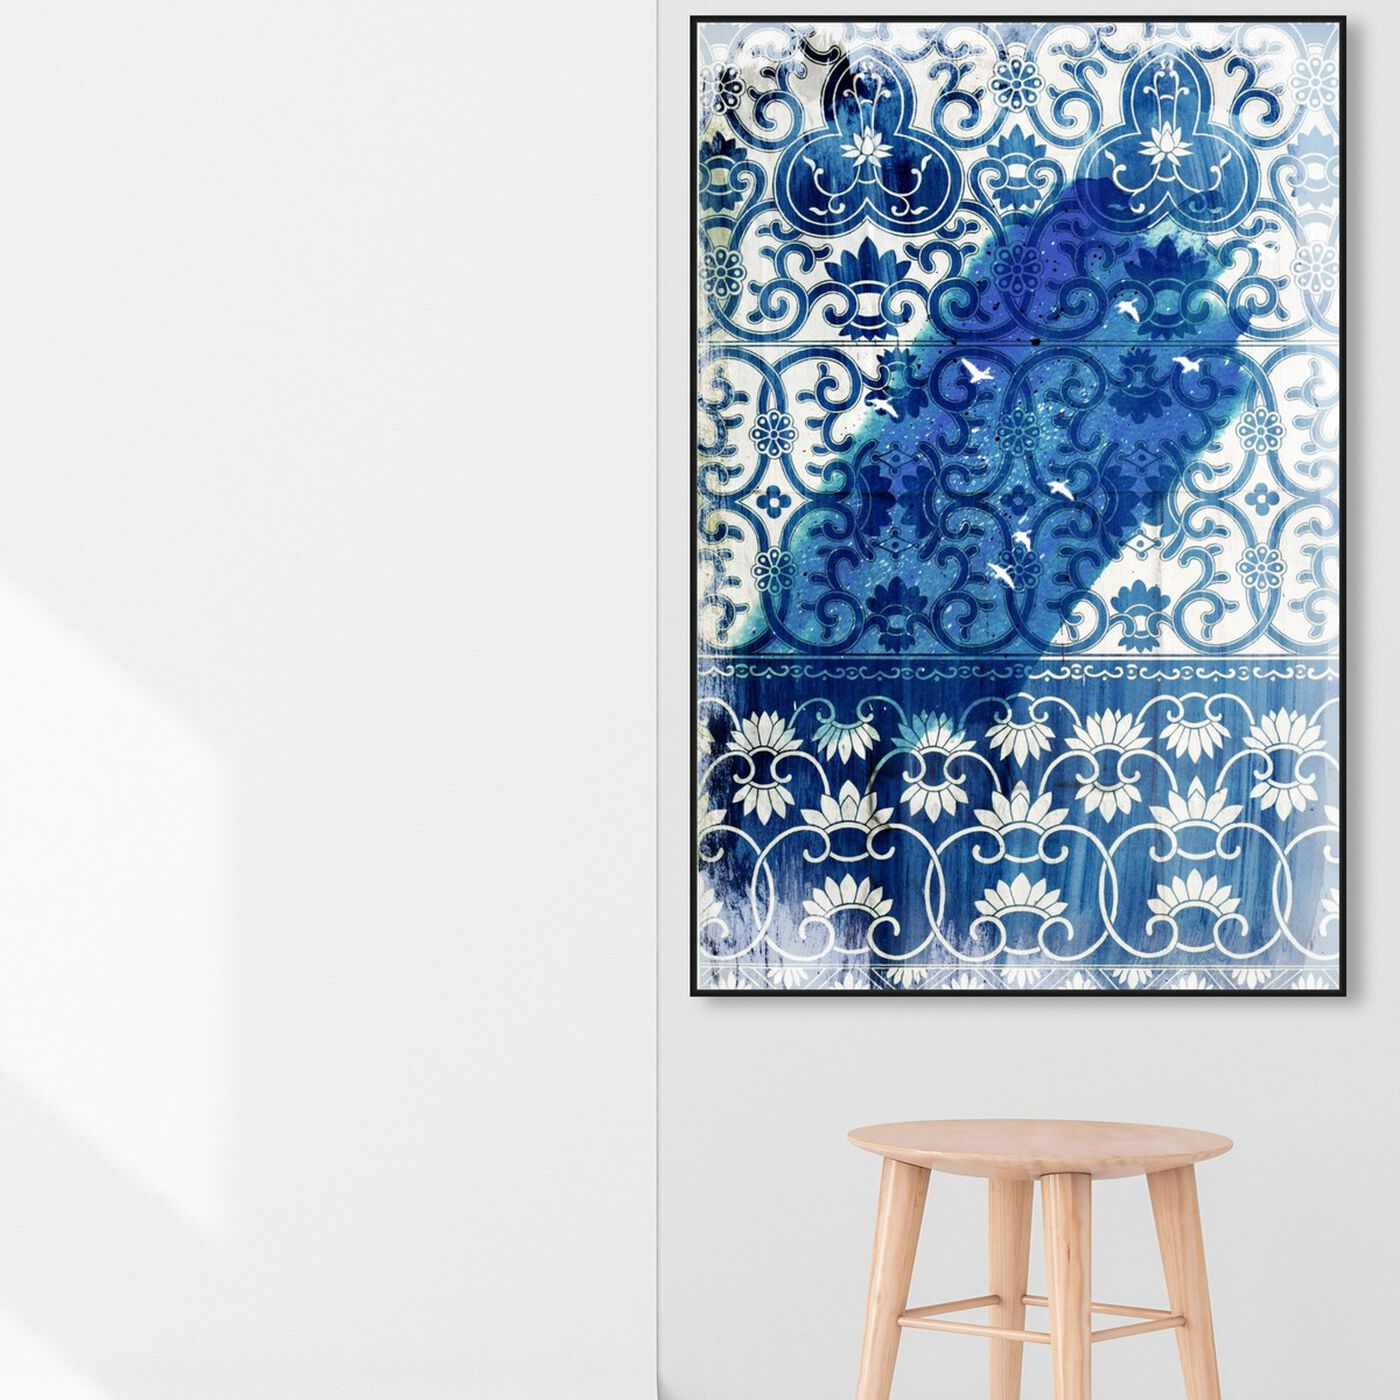 Hanging view of Birds Bleau featuring abstract and patterns art.